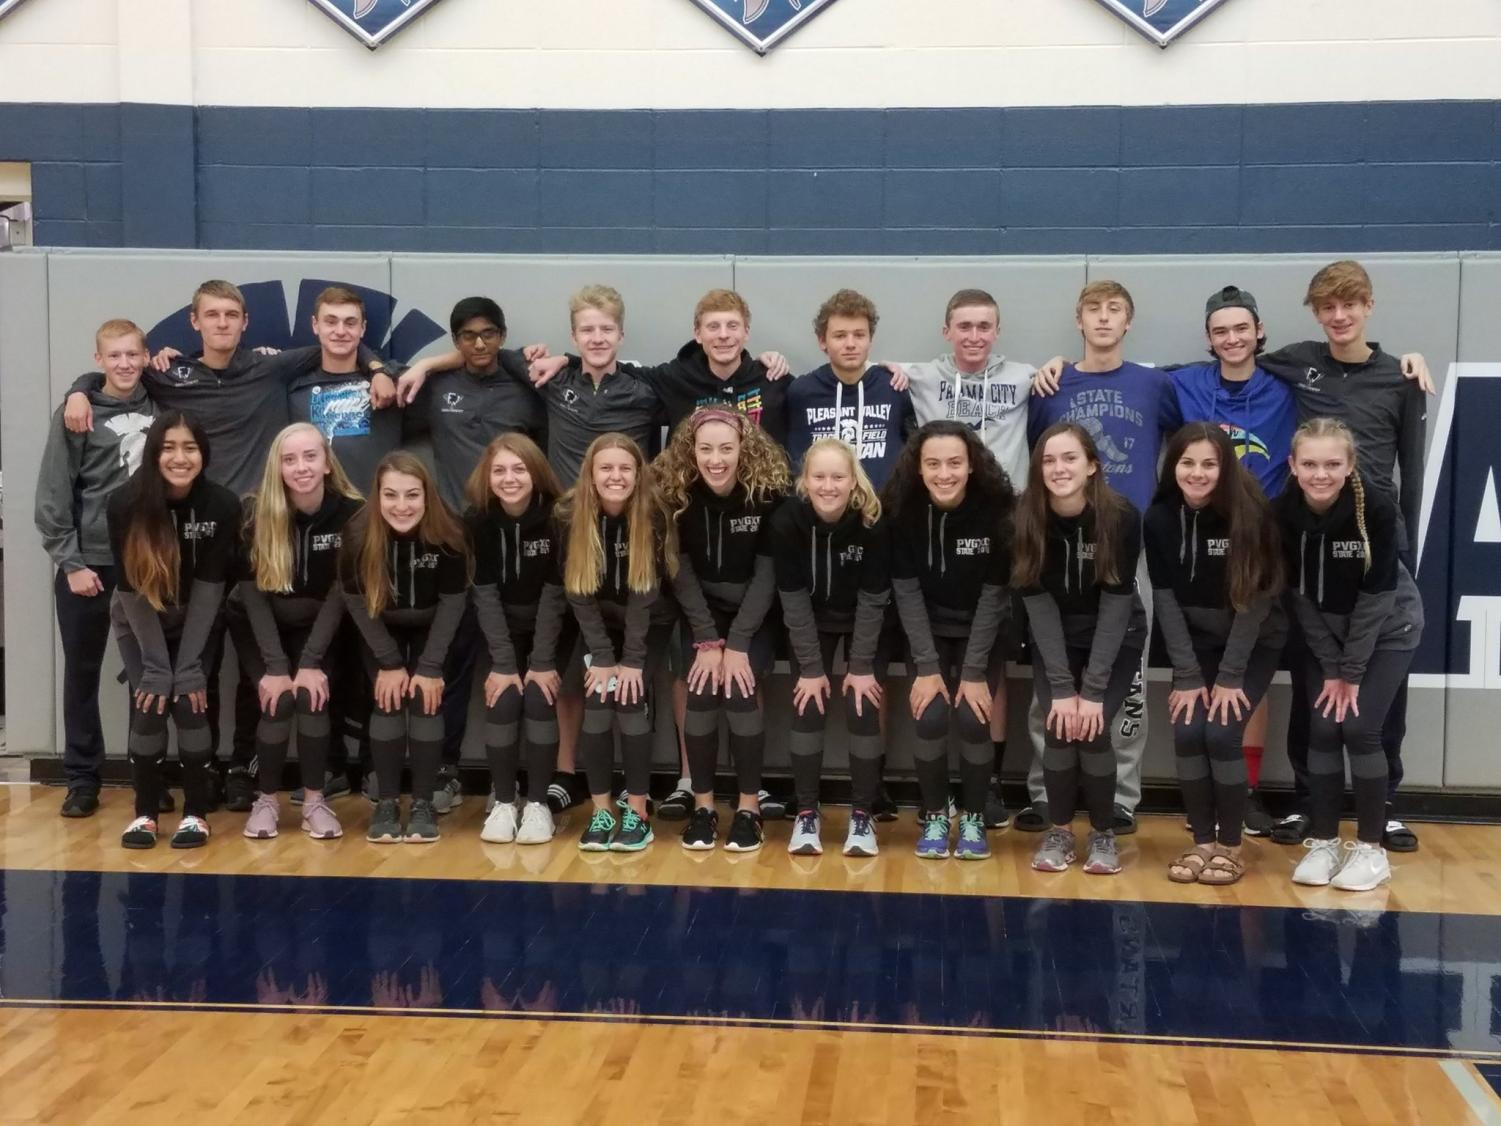 The Cross Country Varsity teams pose together for a picture at their send off before heading off to the state meet.